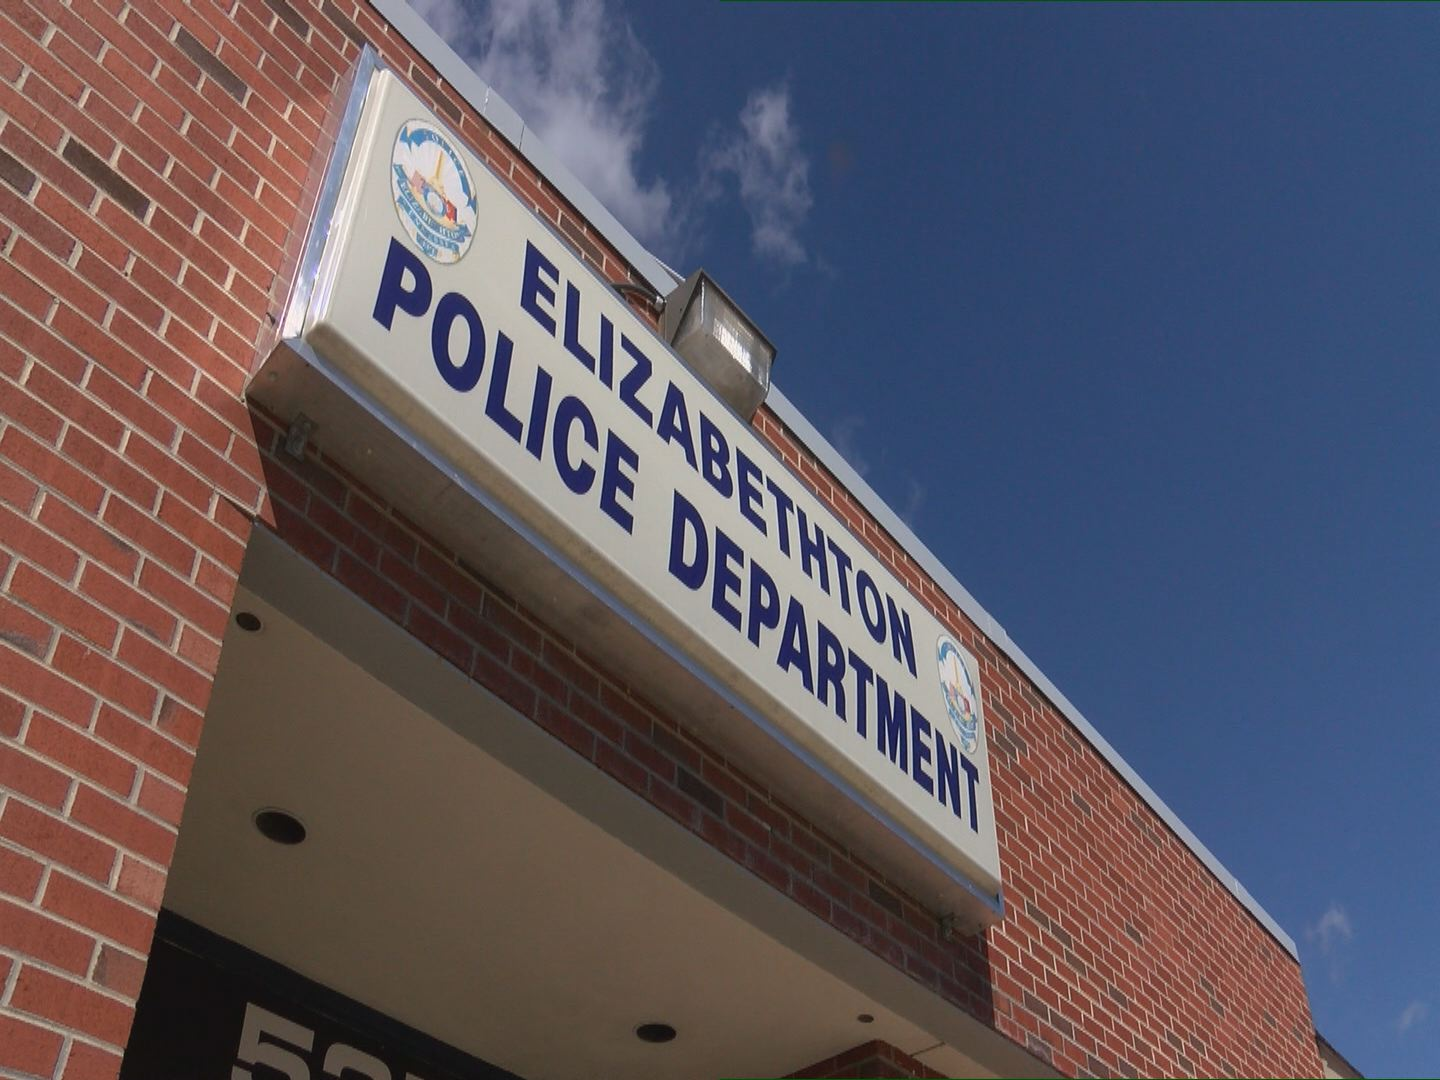 epd - Elizabethton Police Department_220500